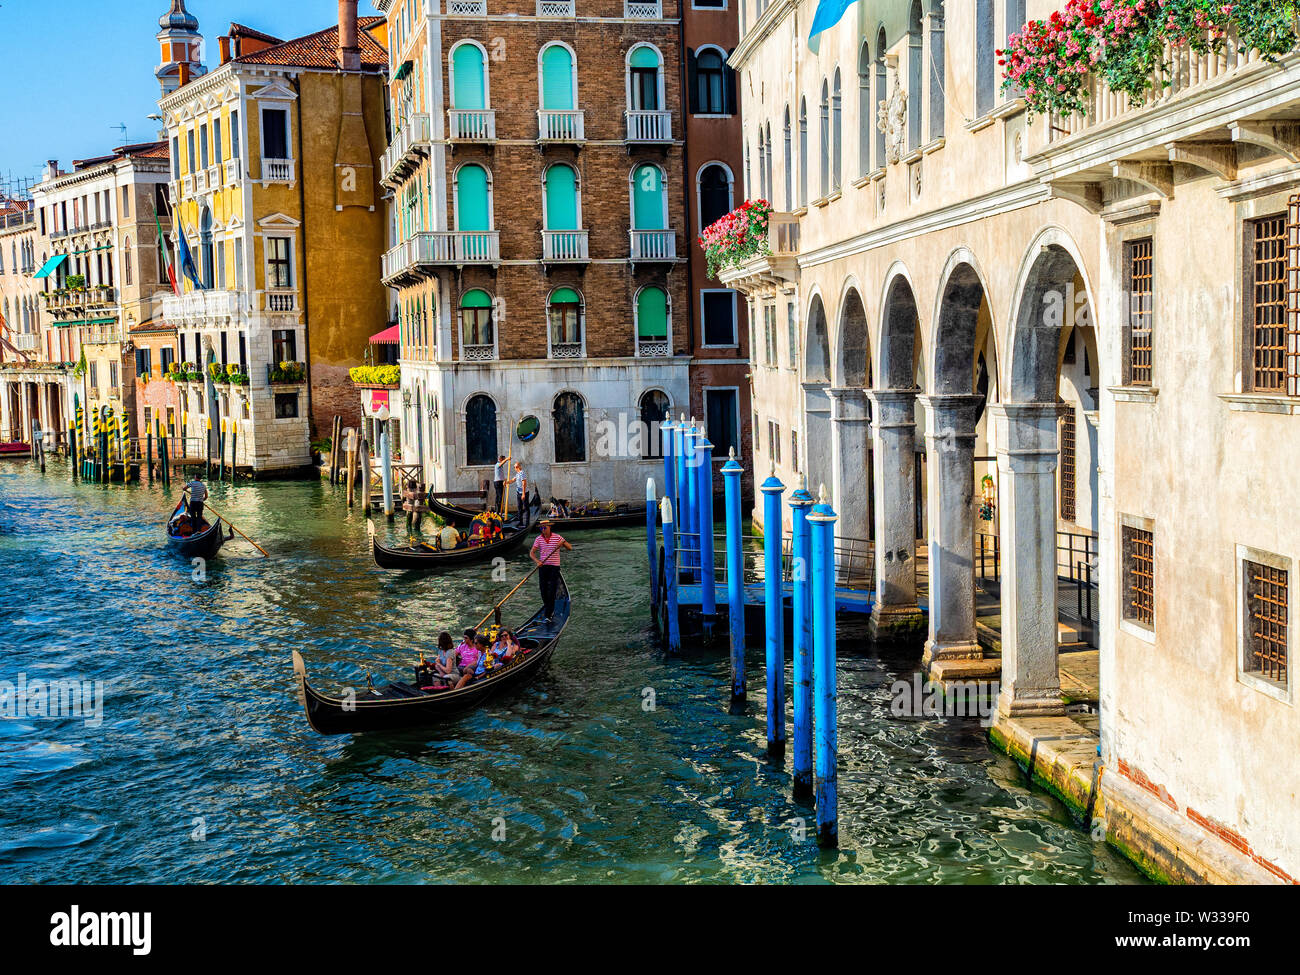 Boats on the Grand Canal in Venice, Italy - Stock Image